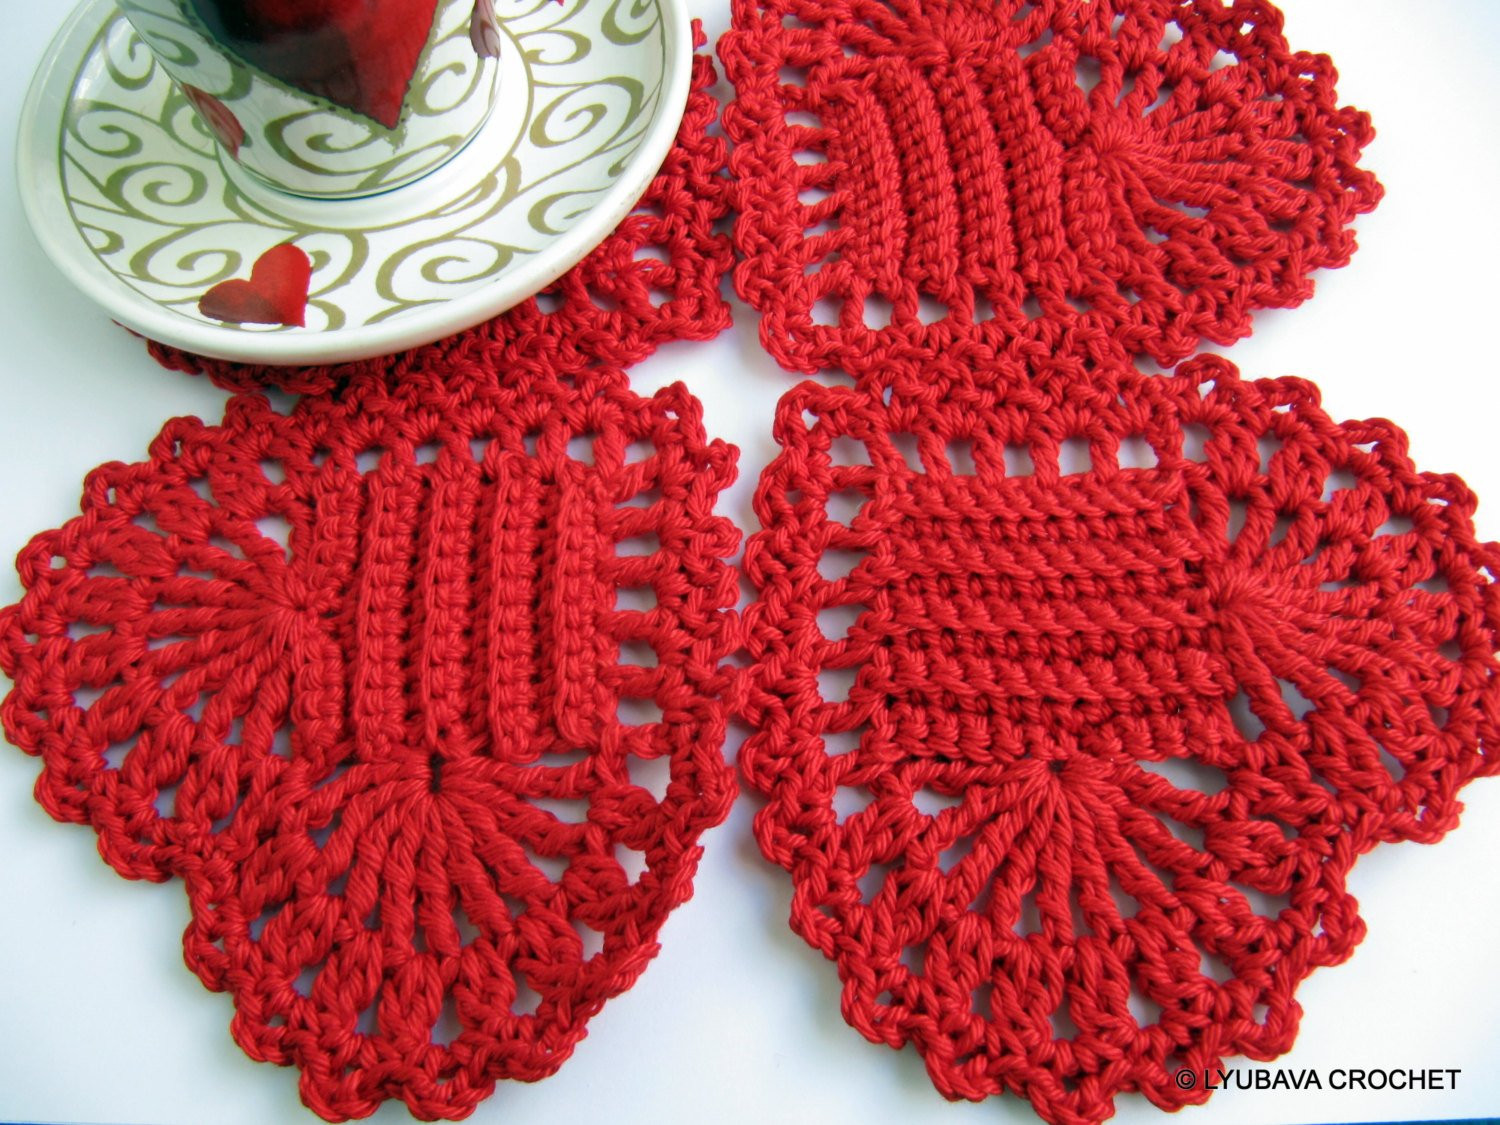 Red Heart Crochet Patterns Unique Red Heart Coasters Pattern Crochet Home Decor Pattern Of Charming 49 Models Red Heart Crochet Patterns